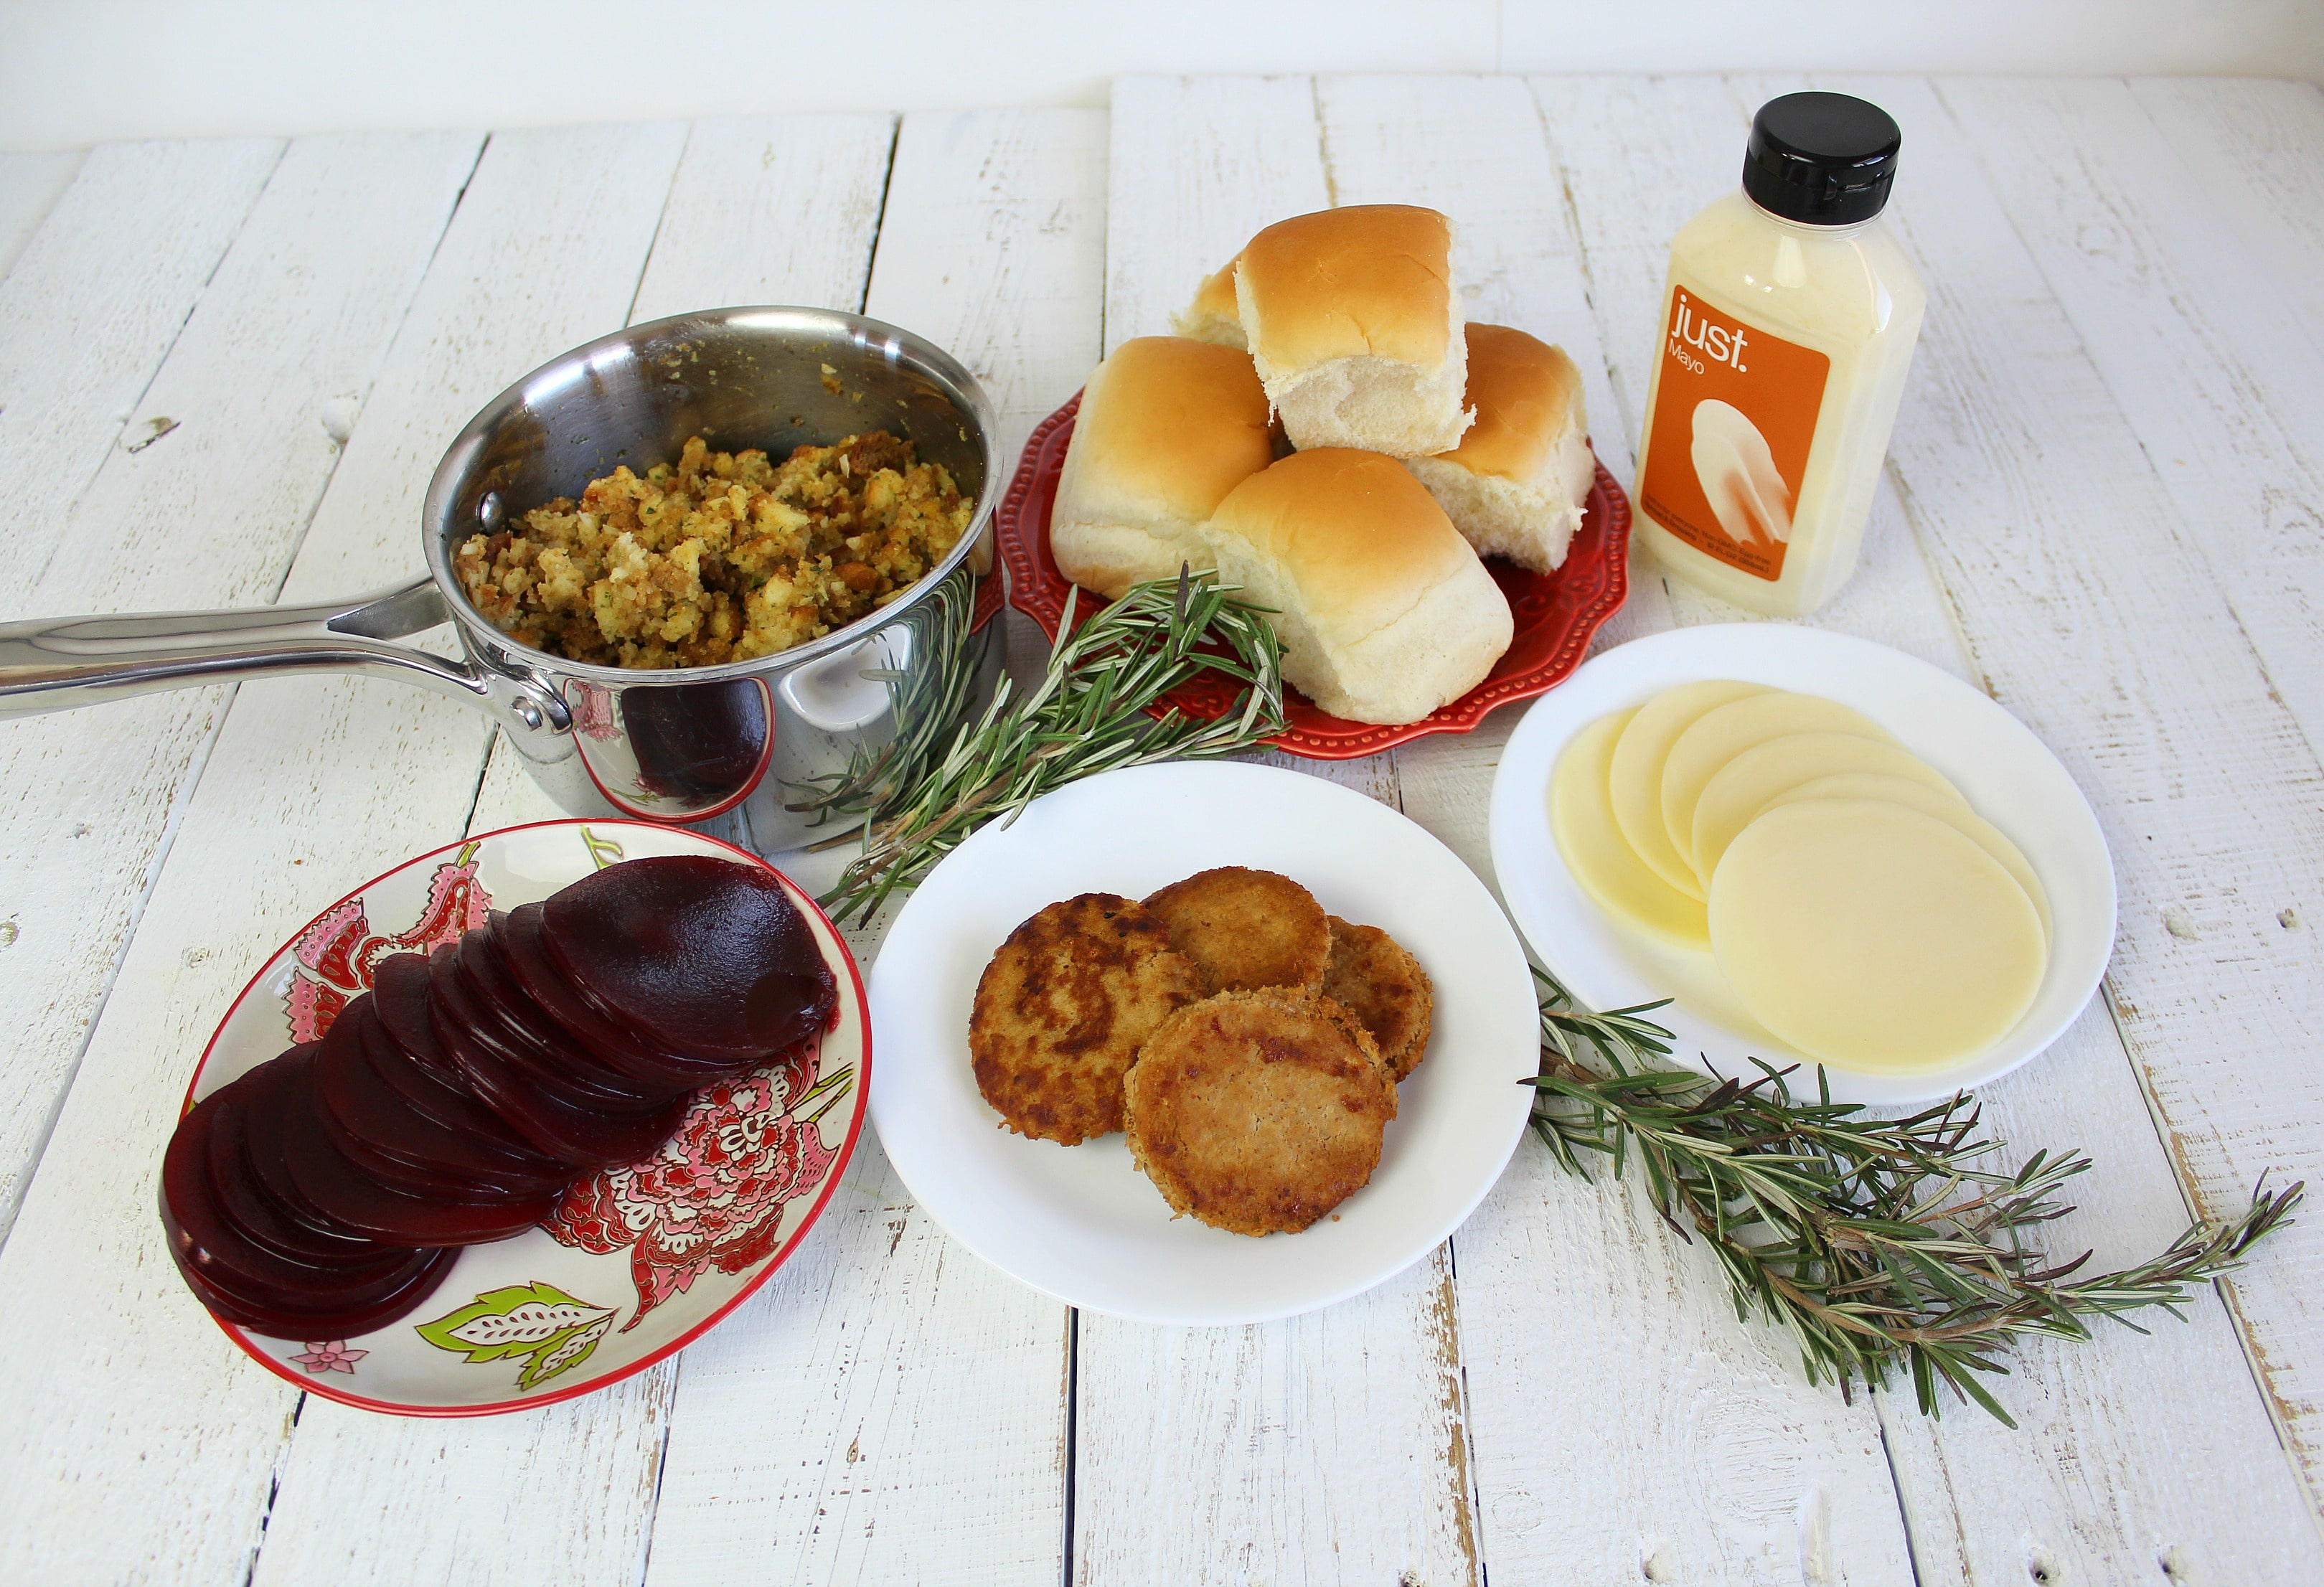 Lay out all your ingredients before cooking: turkey burgers and stuffing warmed, cheese and cranberry sauce sliced.